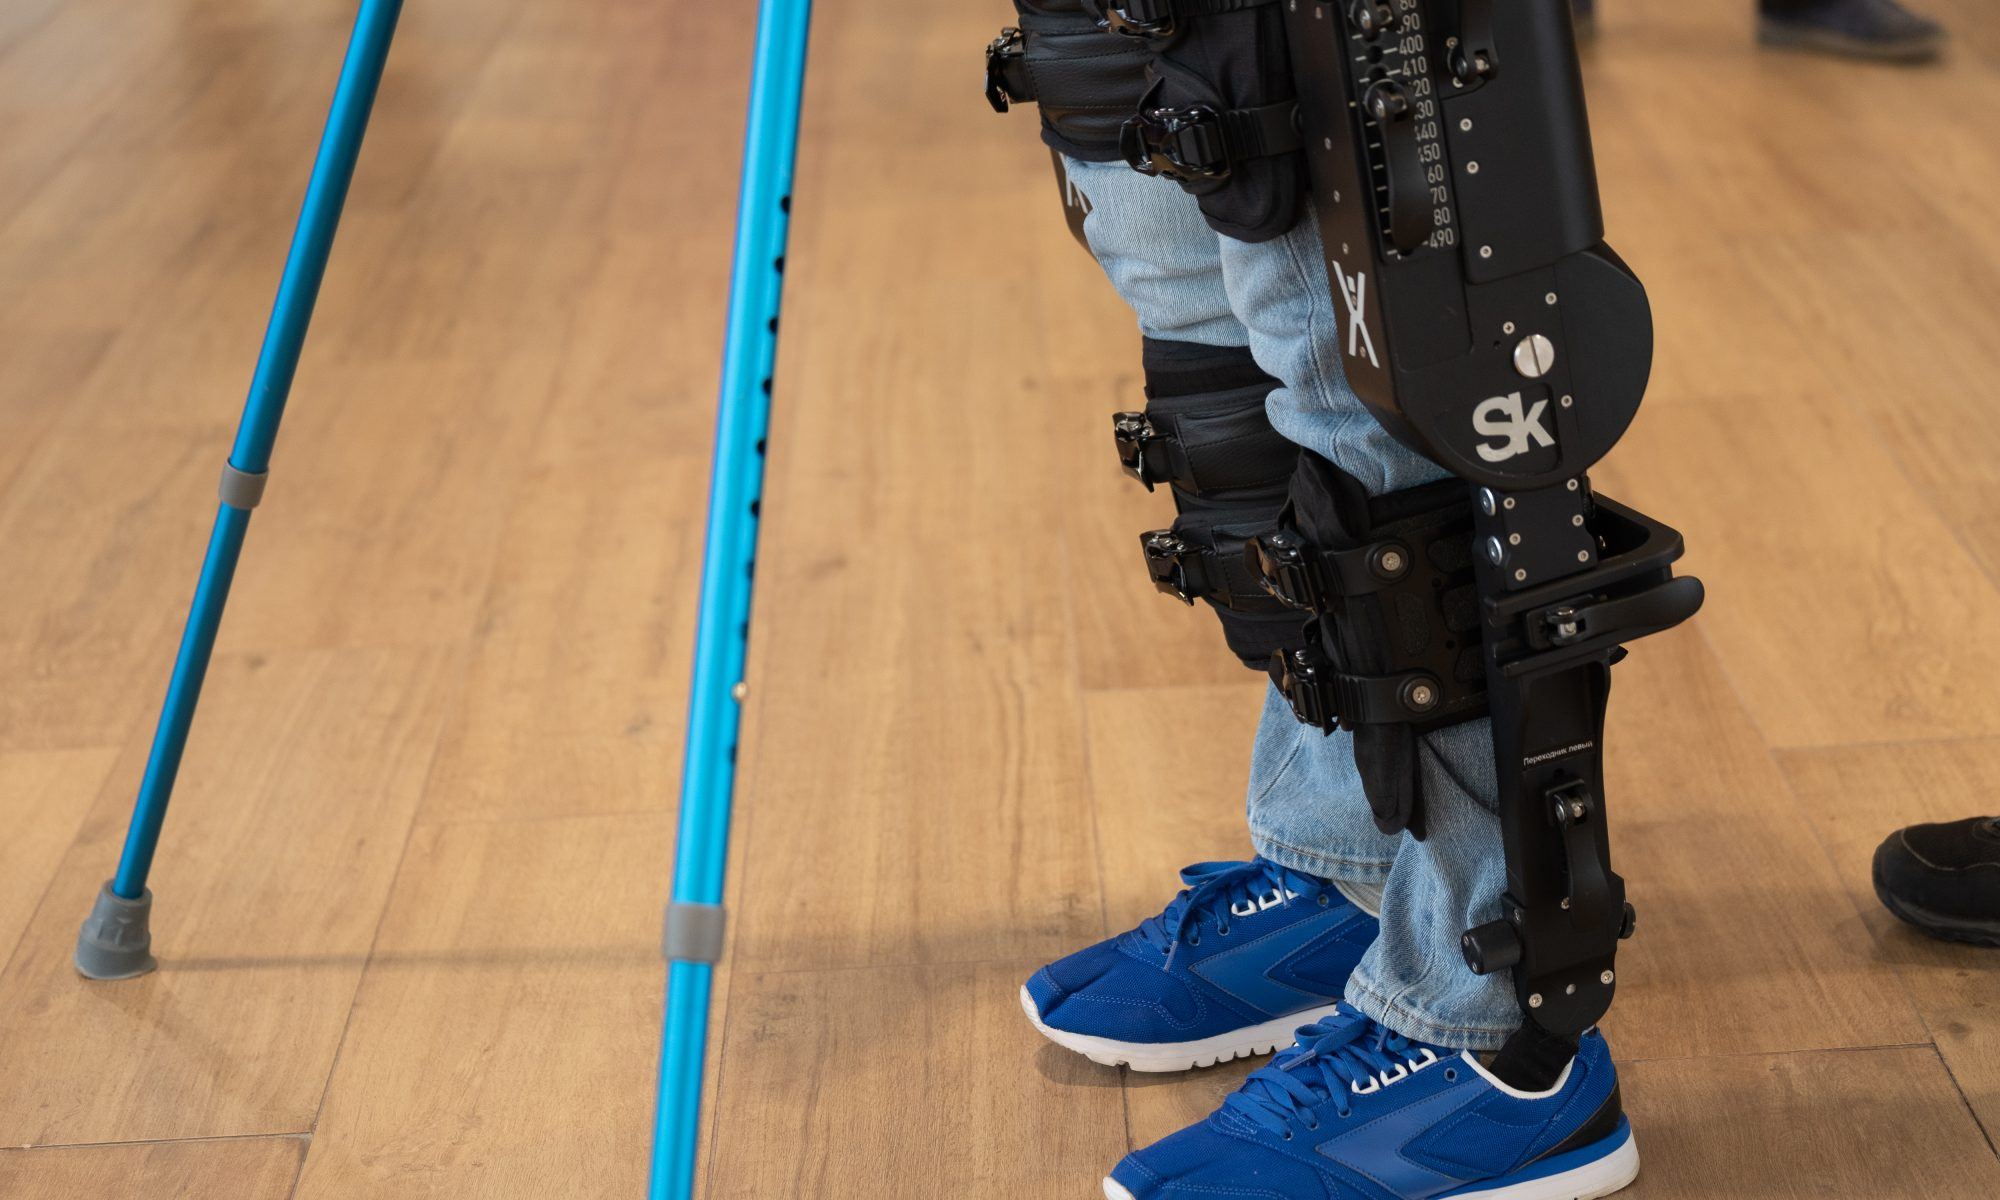 Exoskeleton for assisted walking